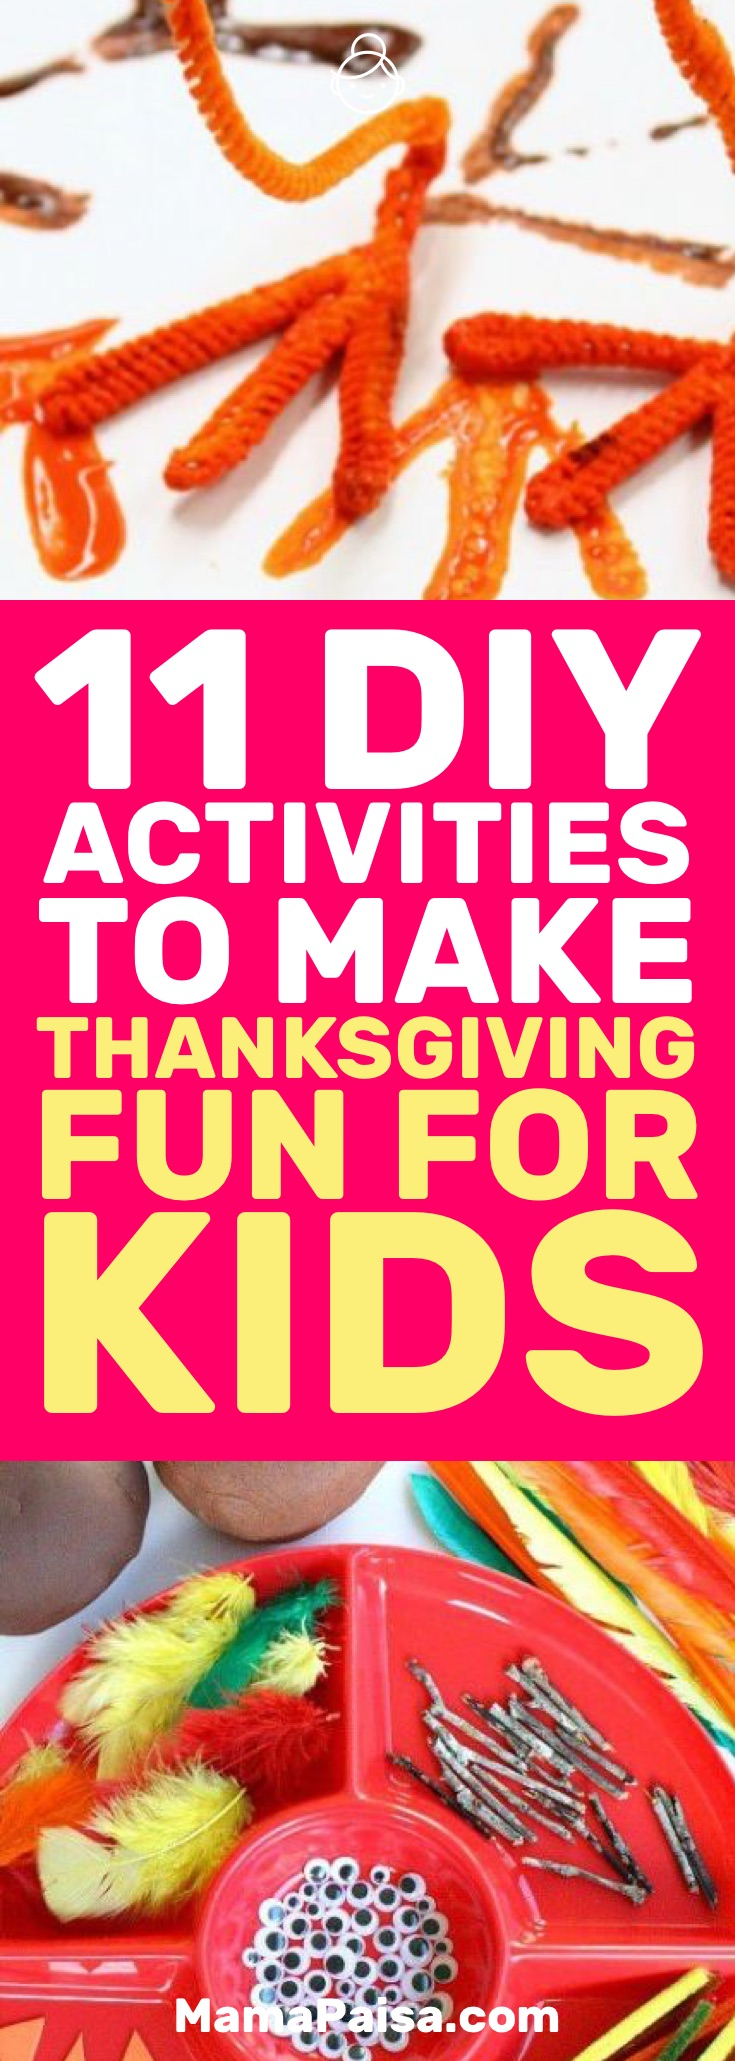 I was looking for some fun Thanksgiving activities for my kids and came across these 11 awesome ones that we could do together. #DIY #Crafts #KidsActivities